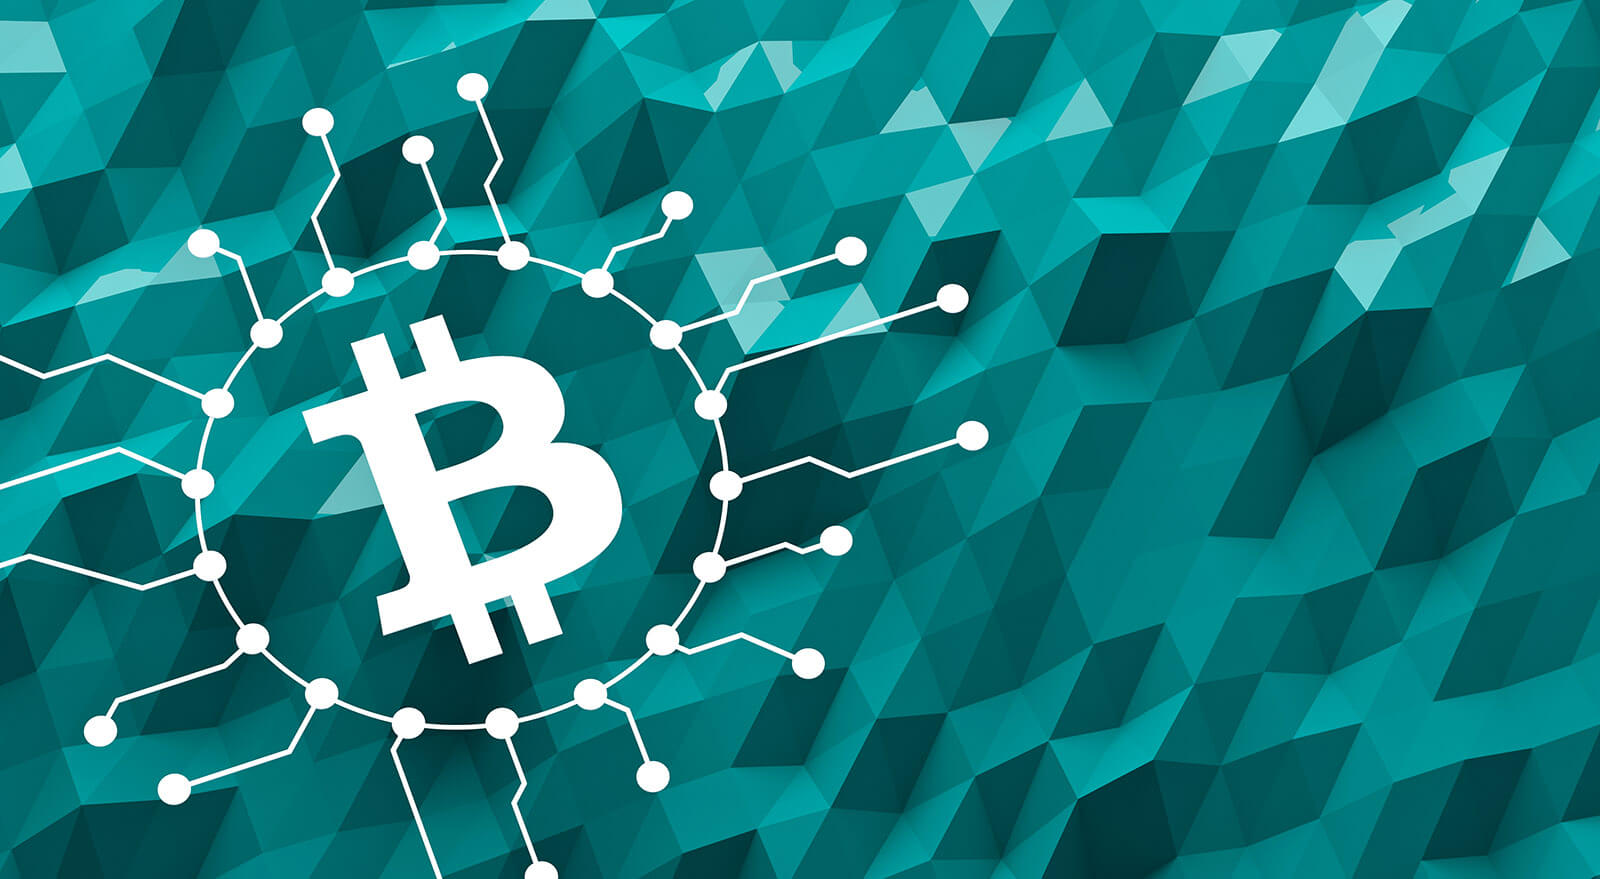 Bitcoin symbol on abstract green background